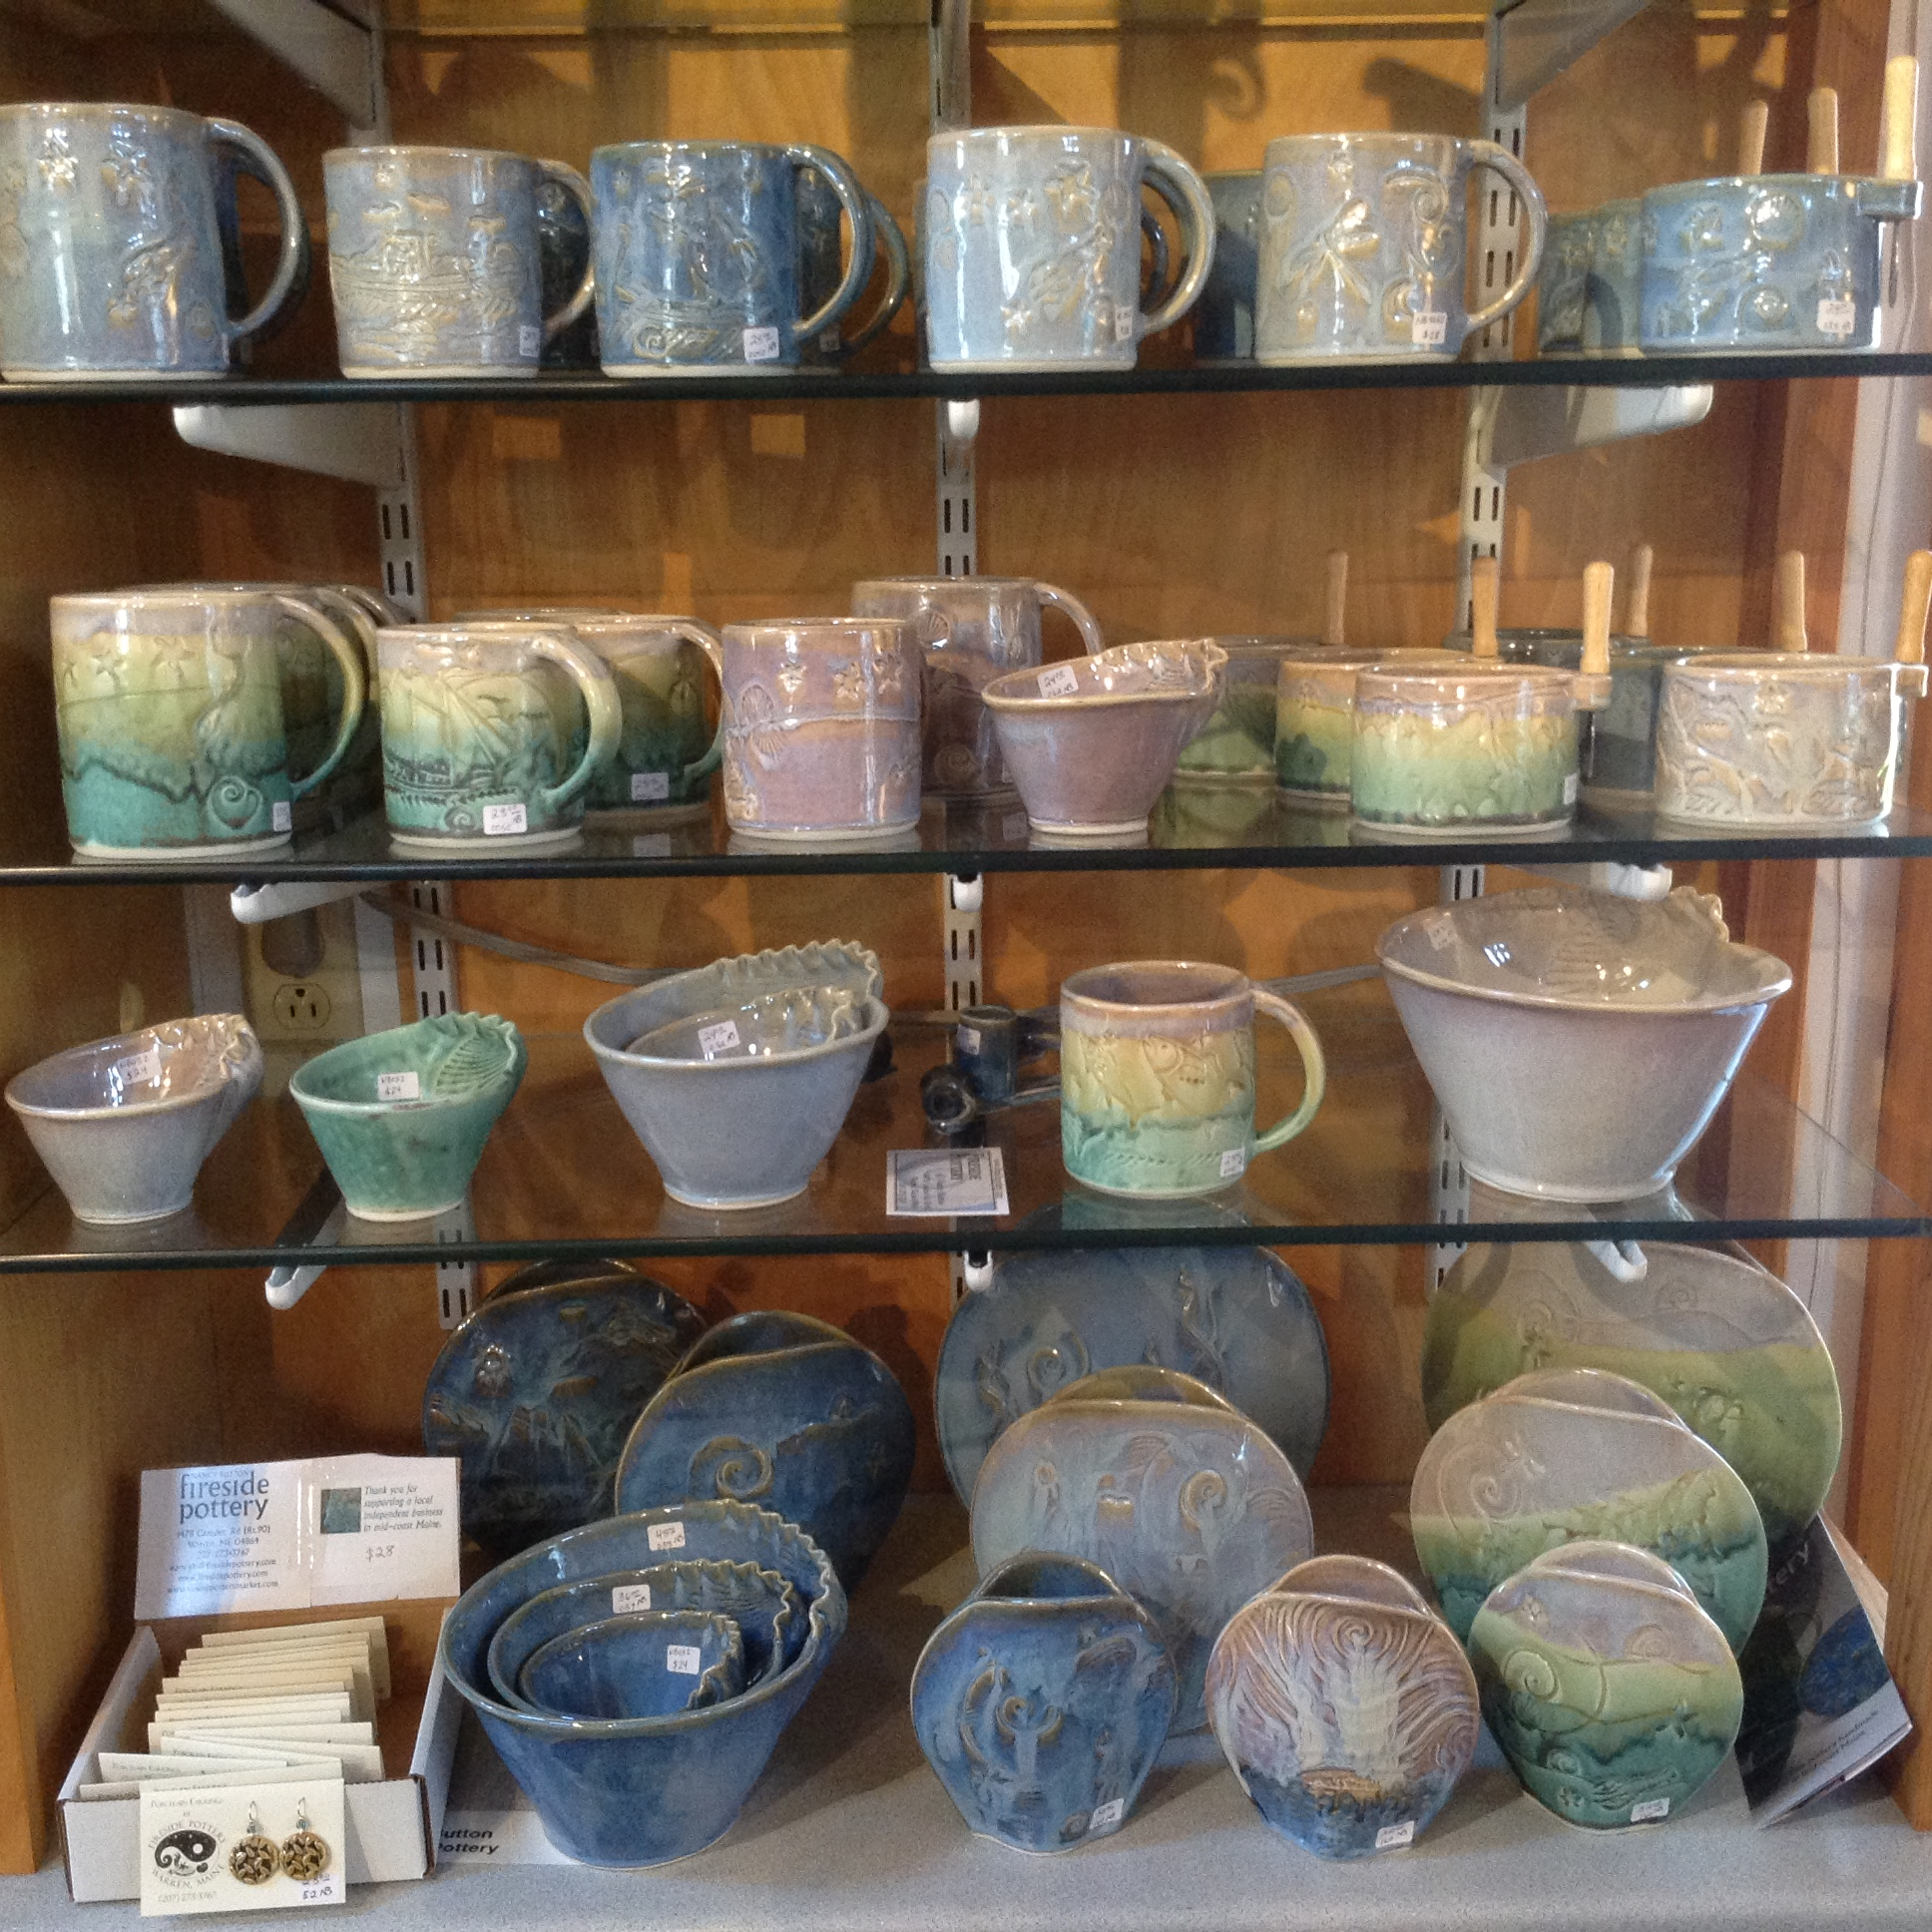 Fireside Pottery display